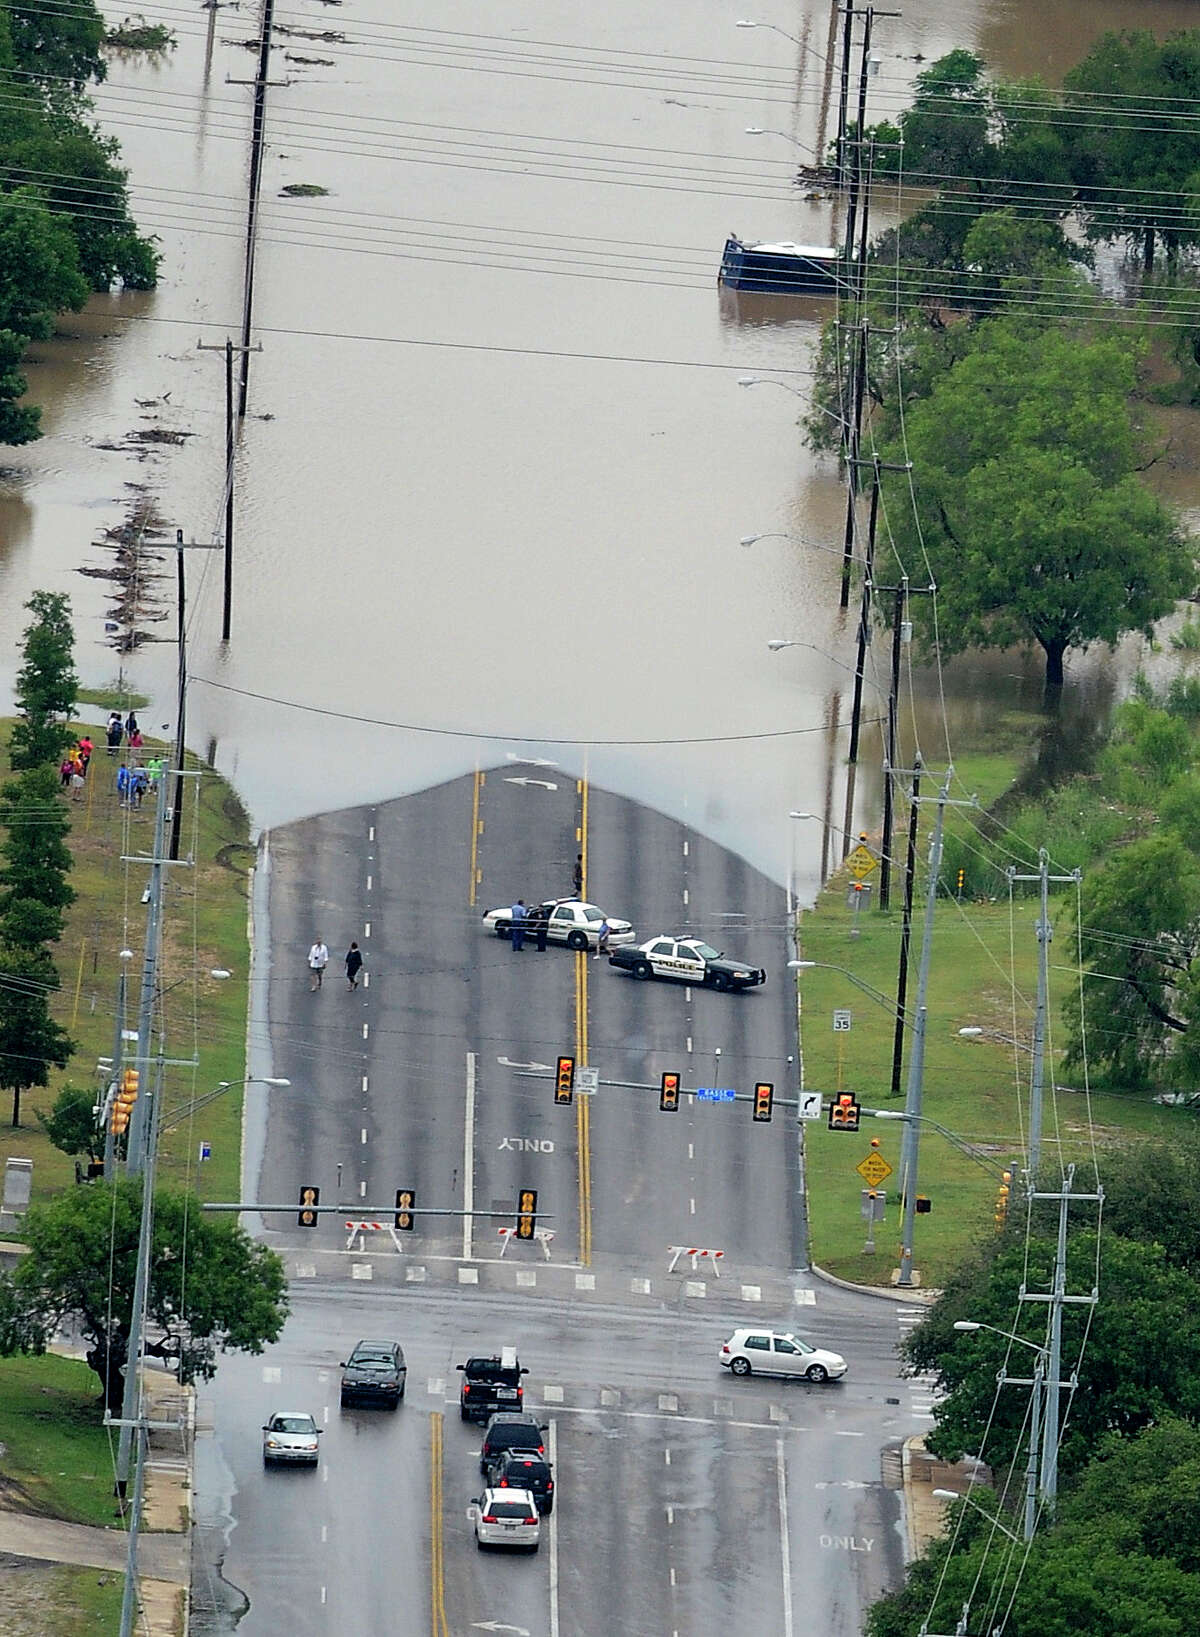 Police block a flooded portion of McCullough north of Basse where a bus is stranded in the water after heavy rains in San Antonio on Saturday morning, May 25, 2013.